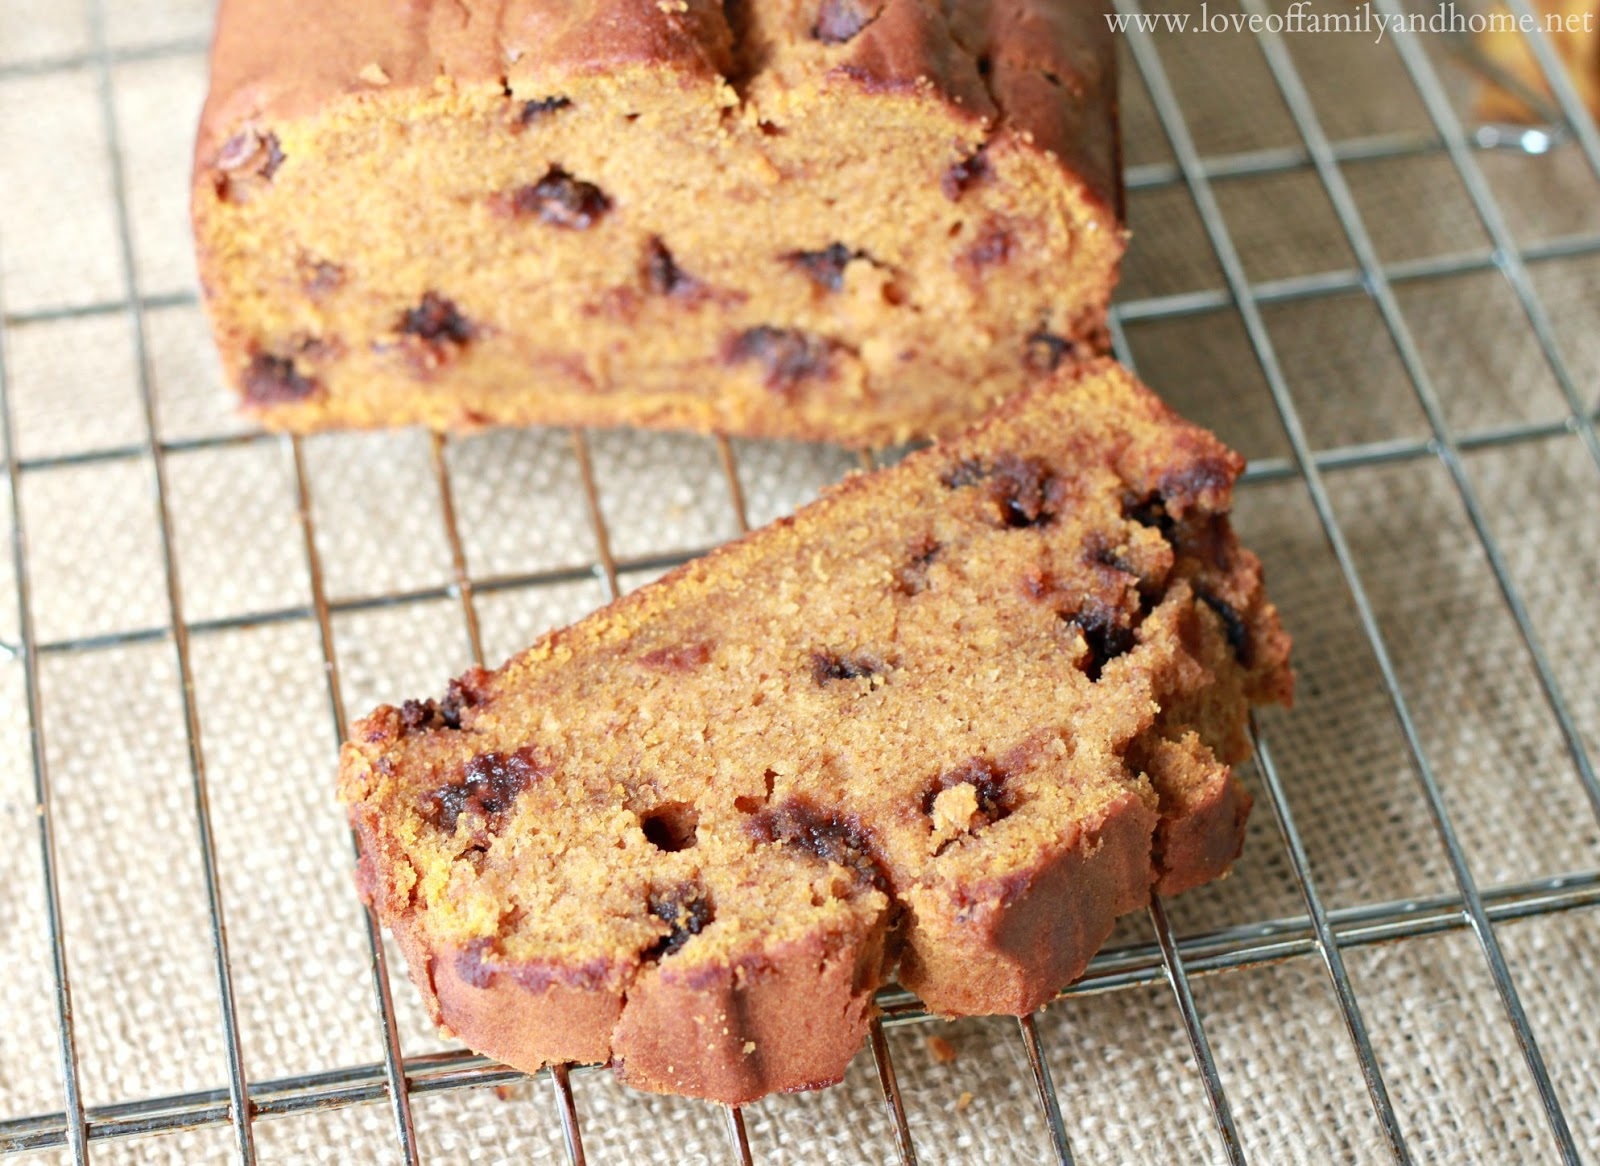 Chocolate Chip Pumpkin Bread - Love of Family & Home